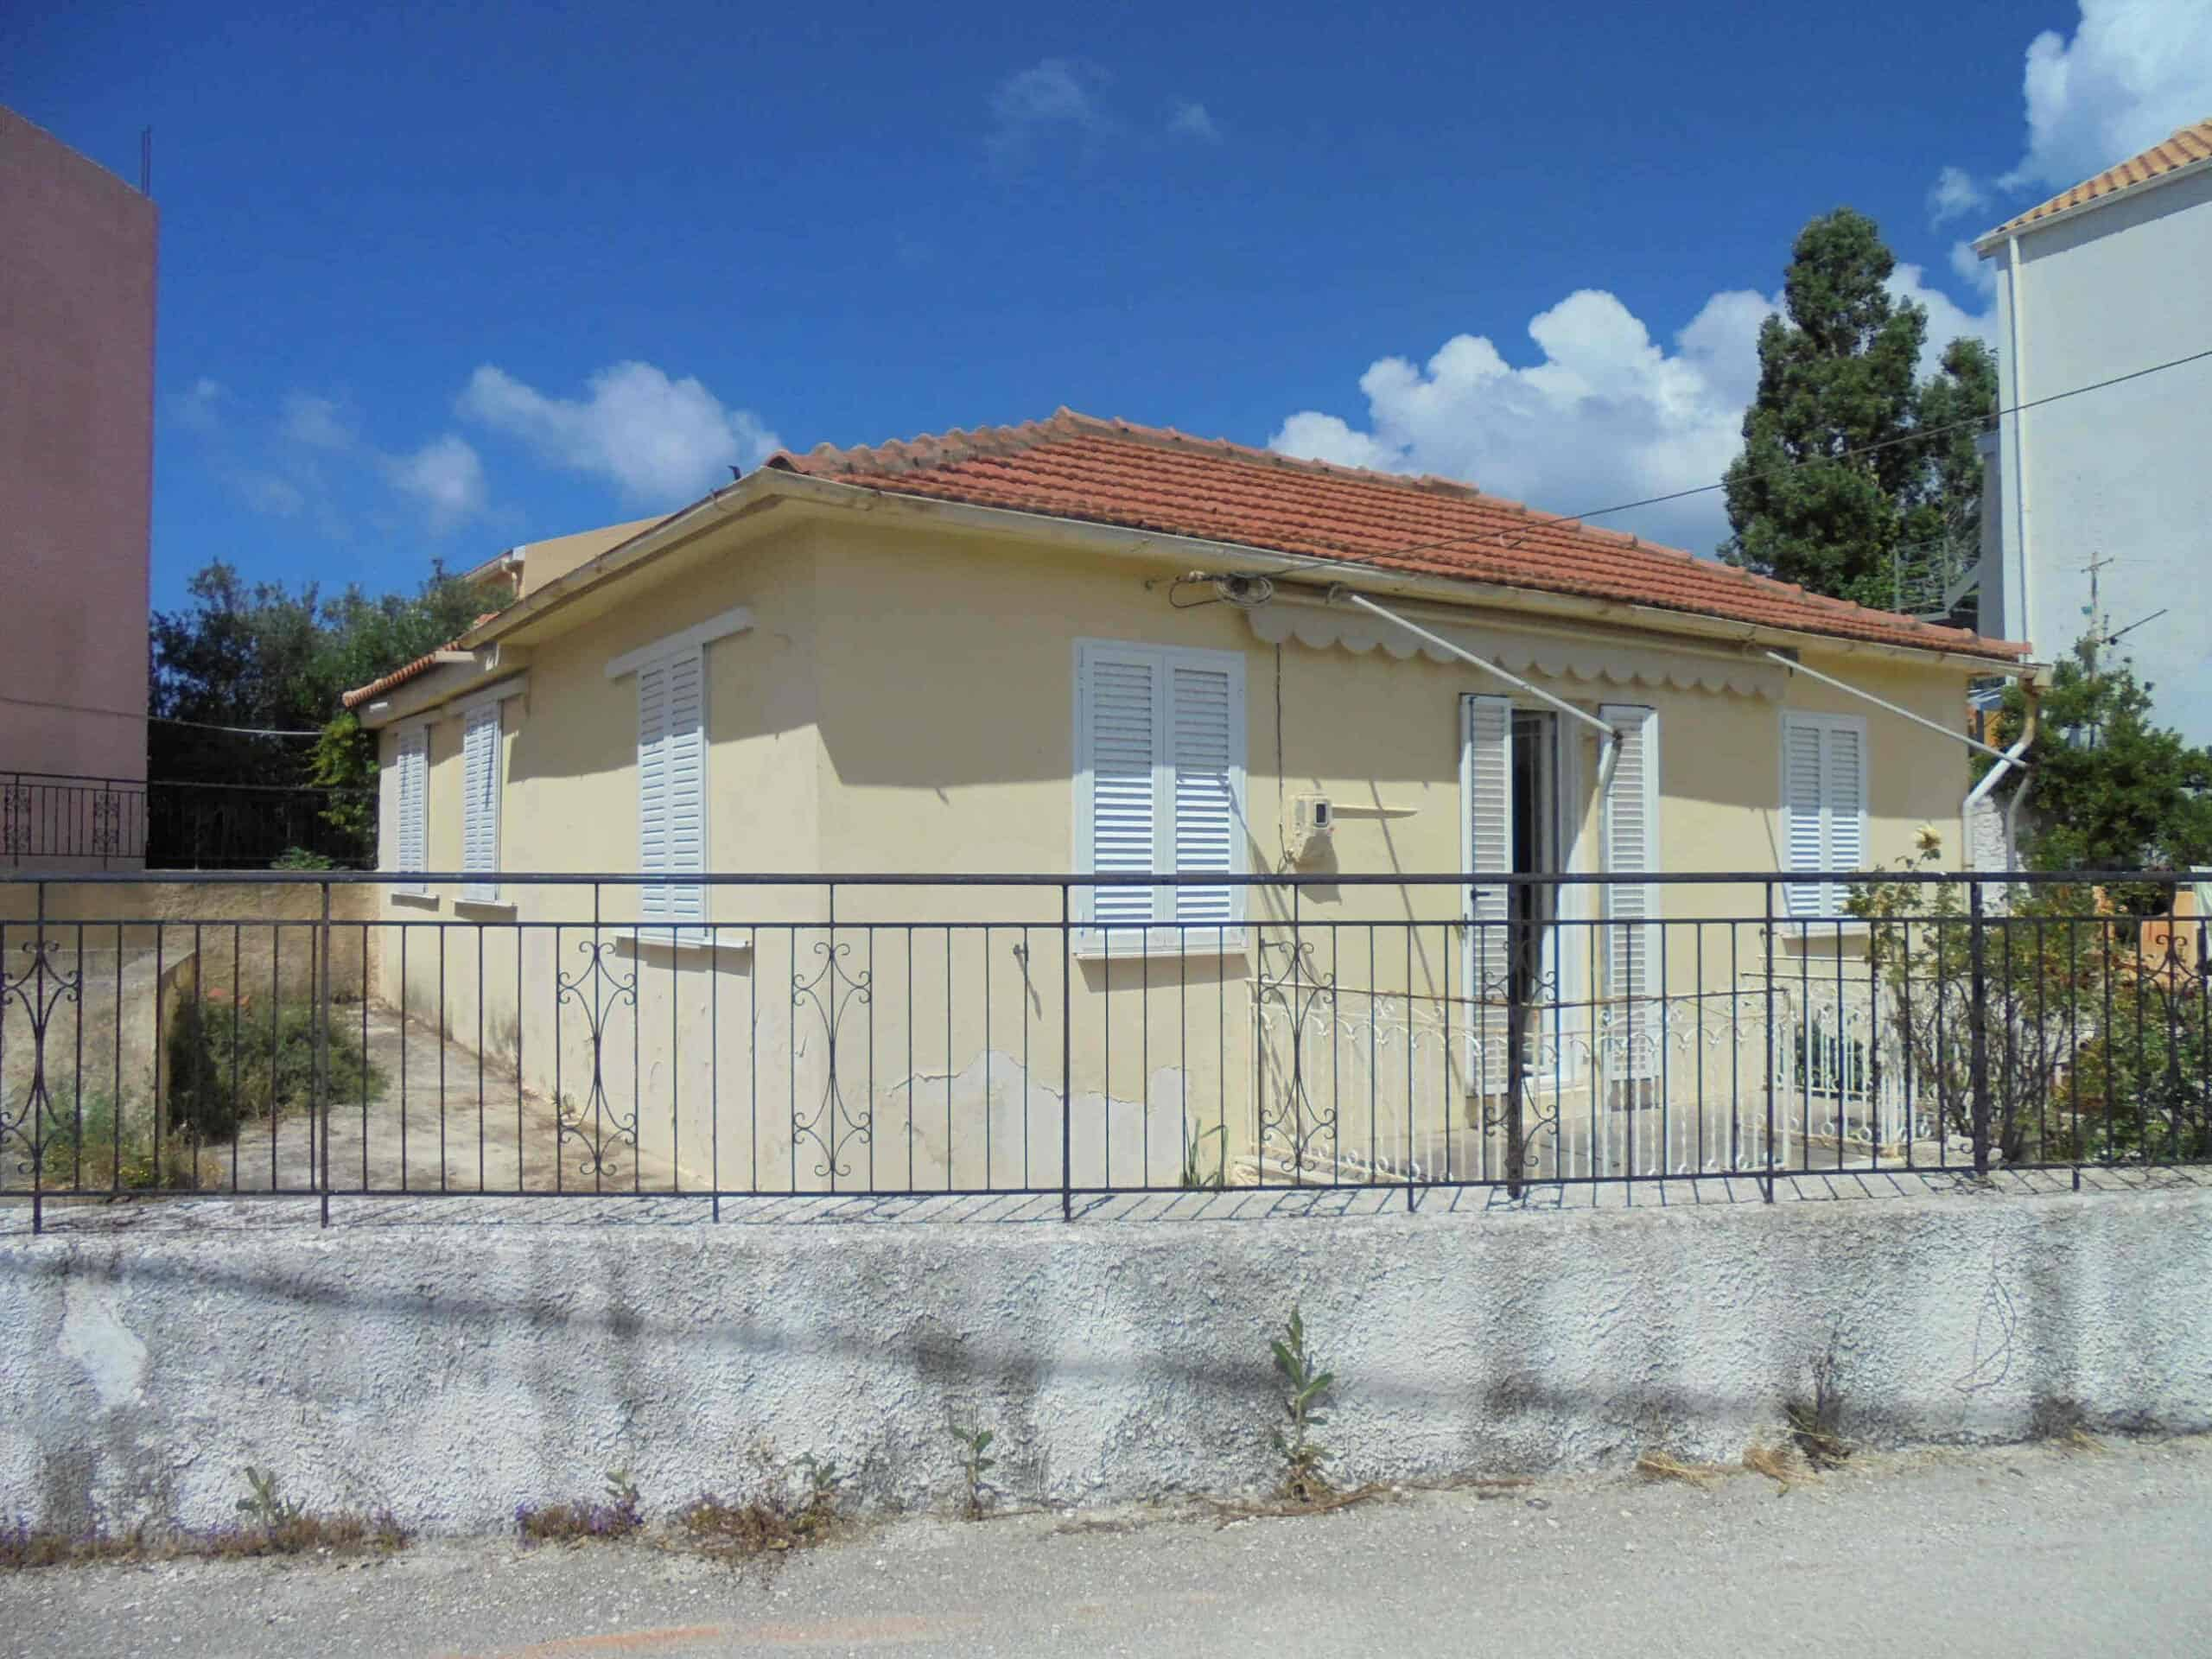 House for sale in Helmata